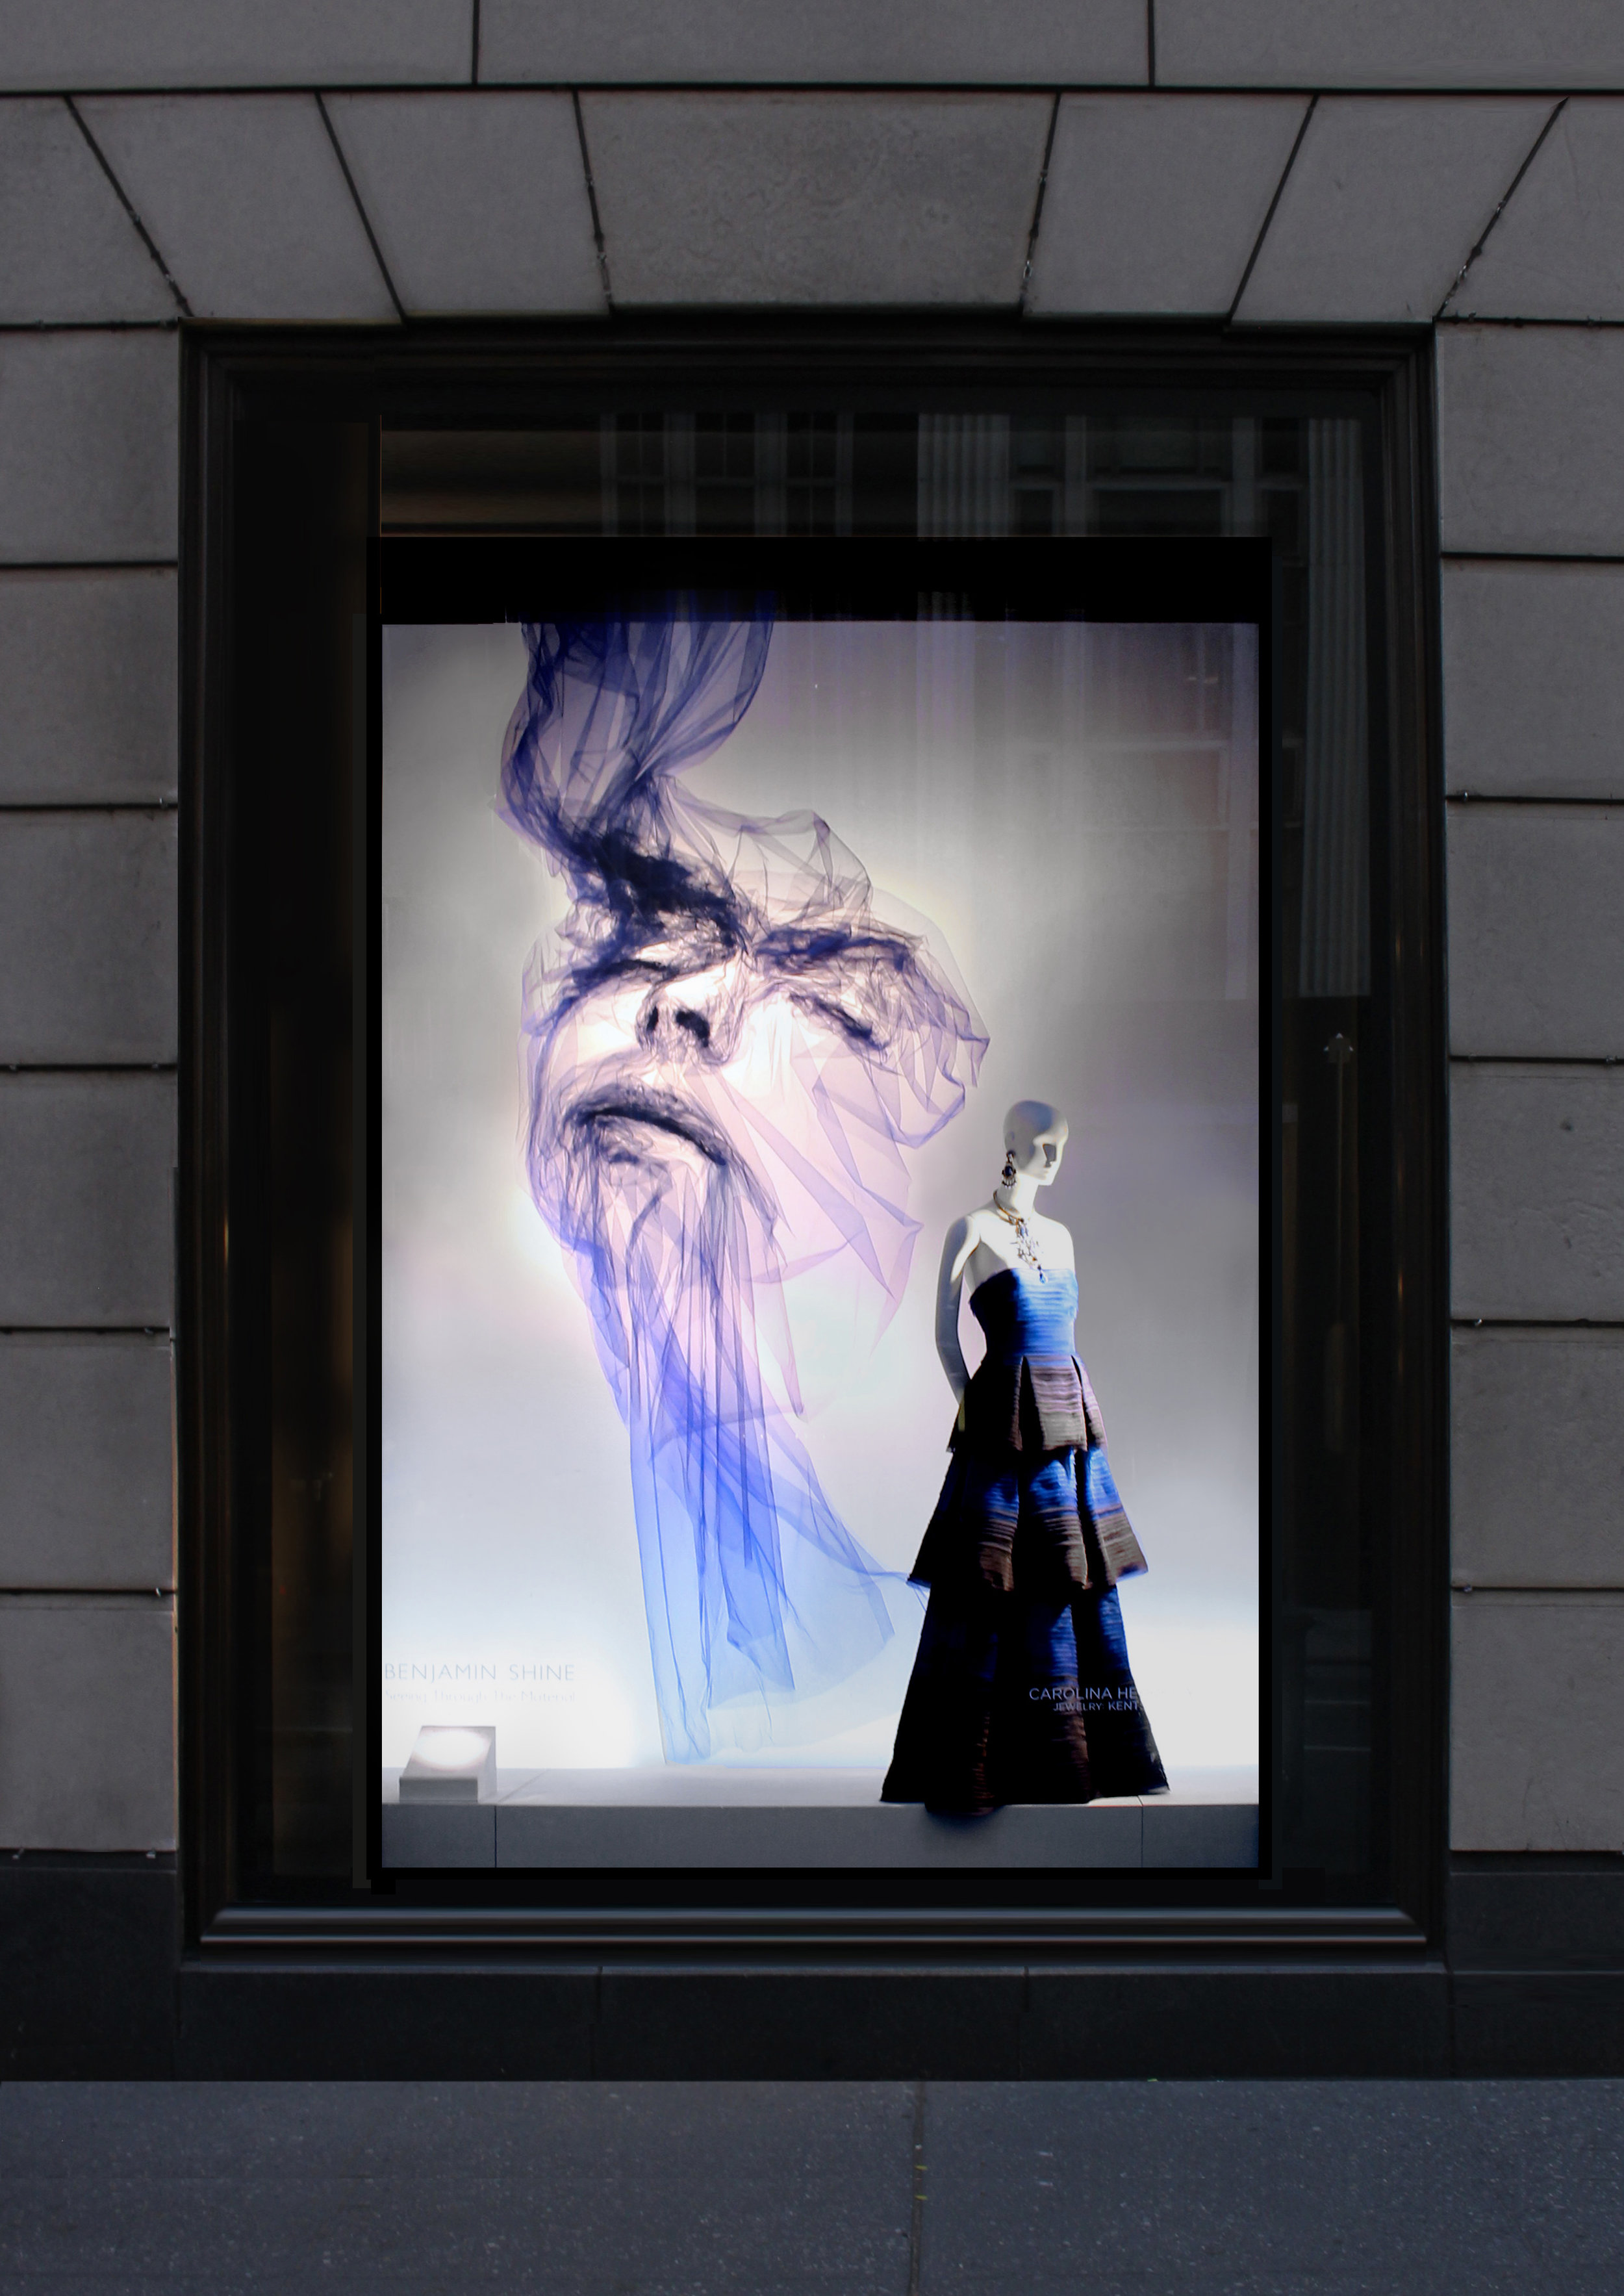 Seeing Through The Material by Benjamin Shine was on display at Bergdorf Goodman from July 7-August 3, 2017. Photo by Ricky Sehav